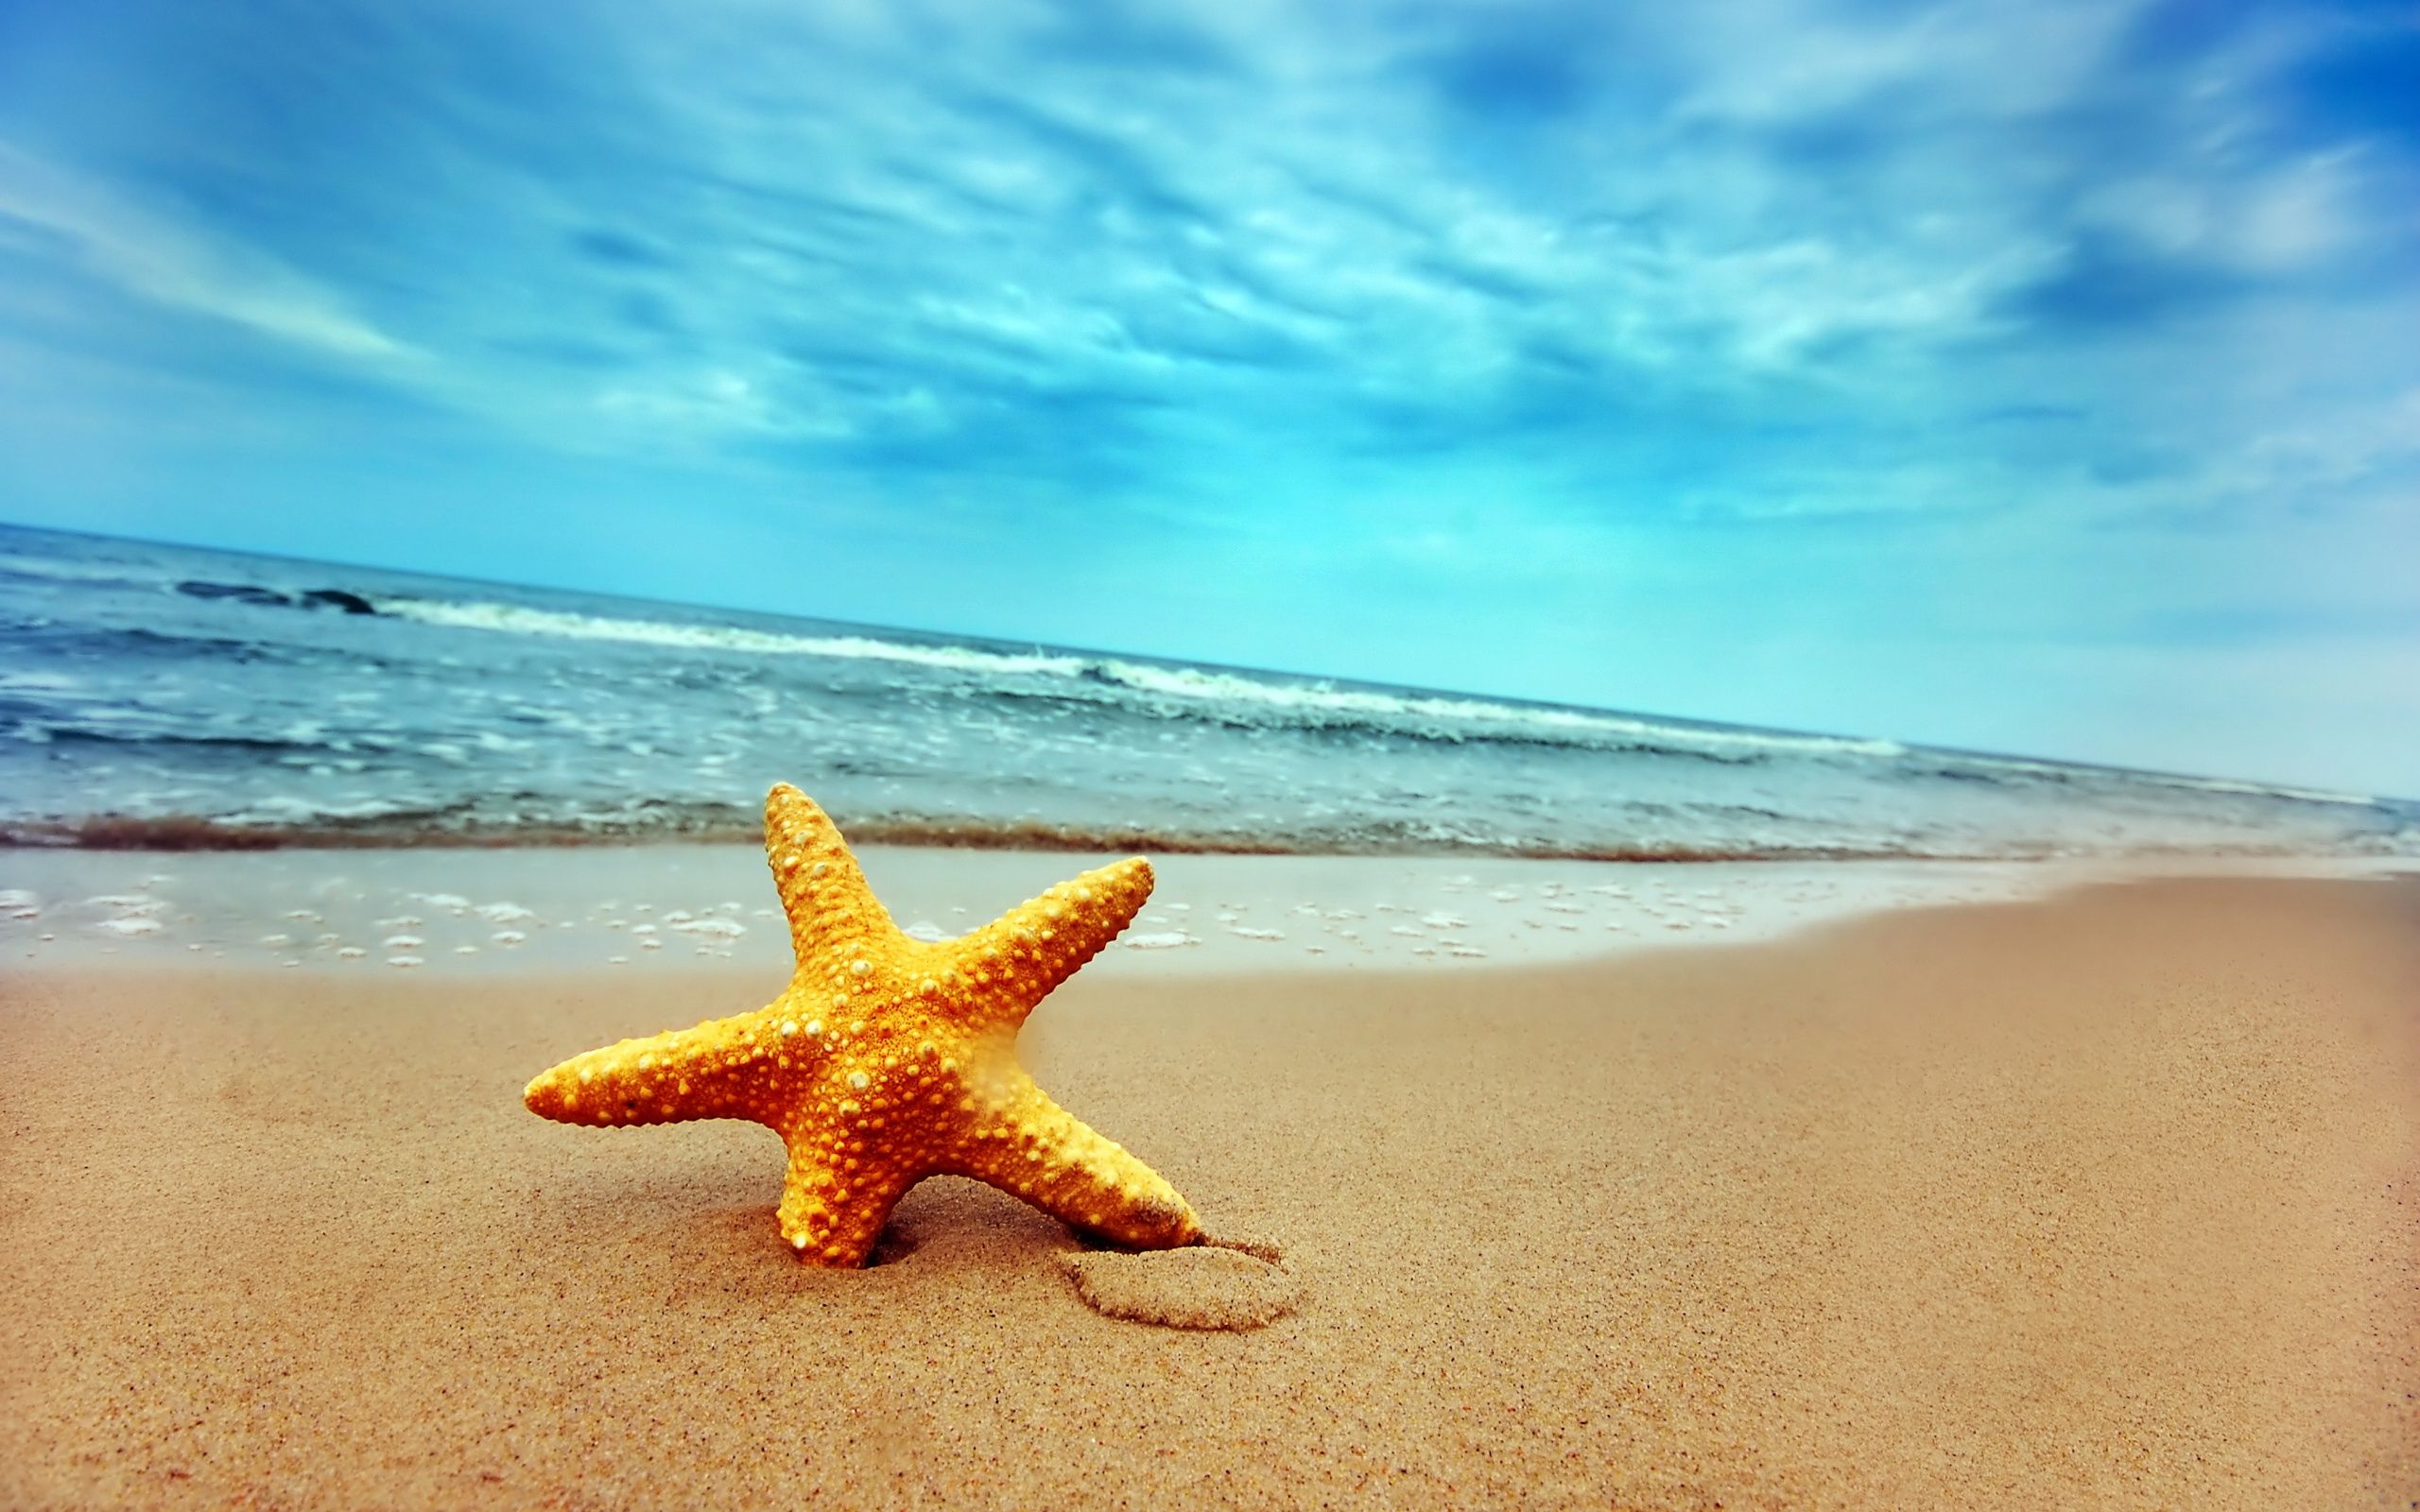 Starfish on Beach Sand (click to view)